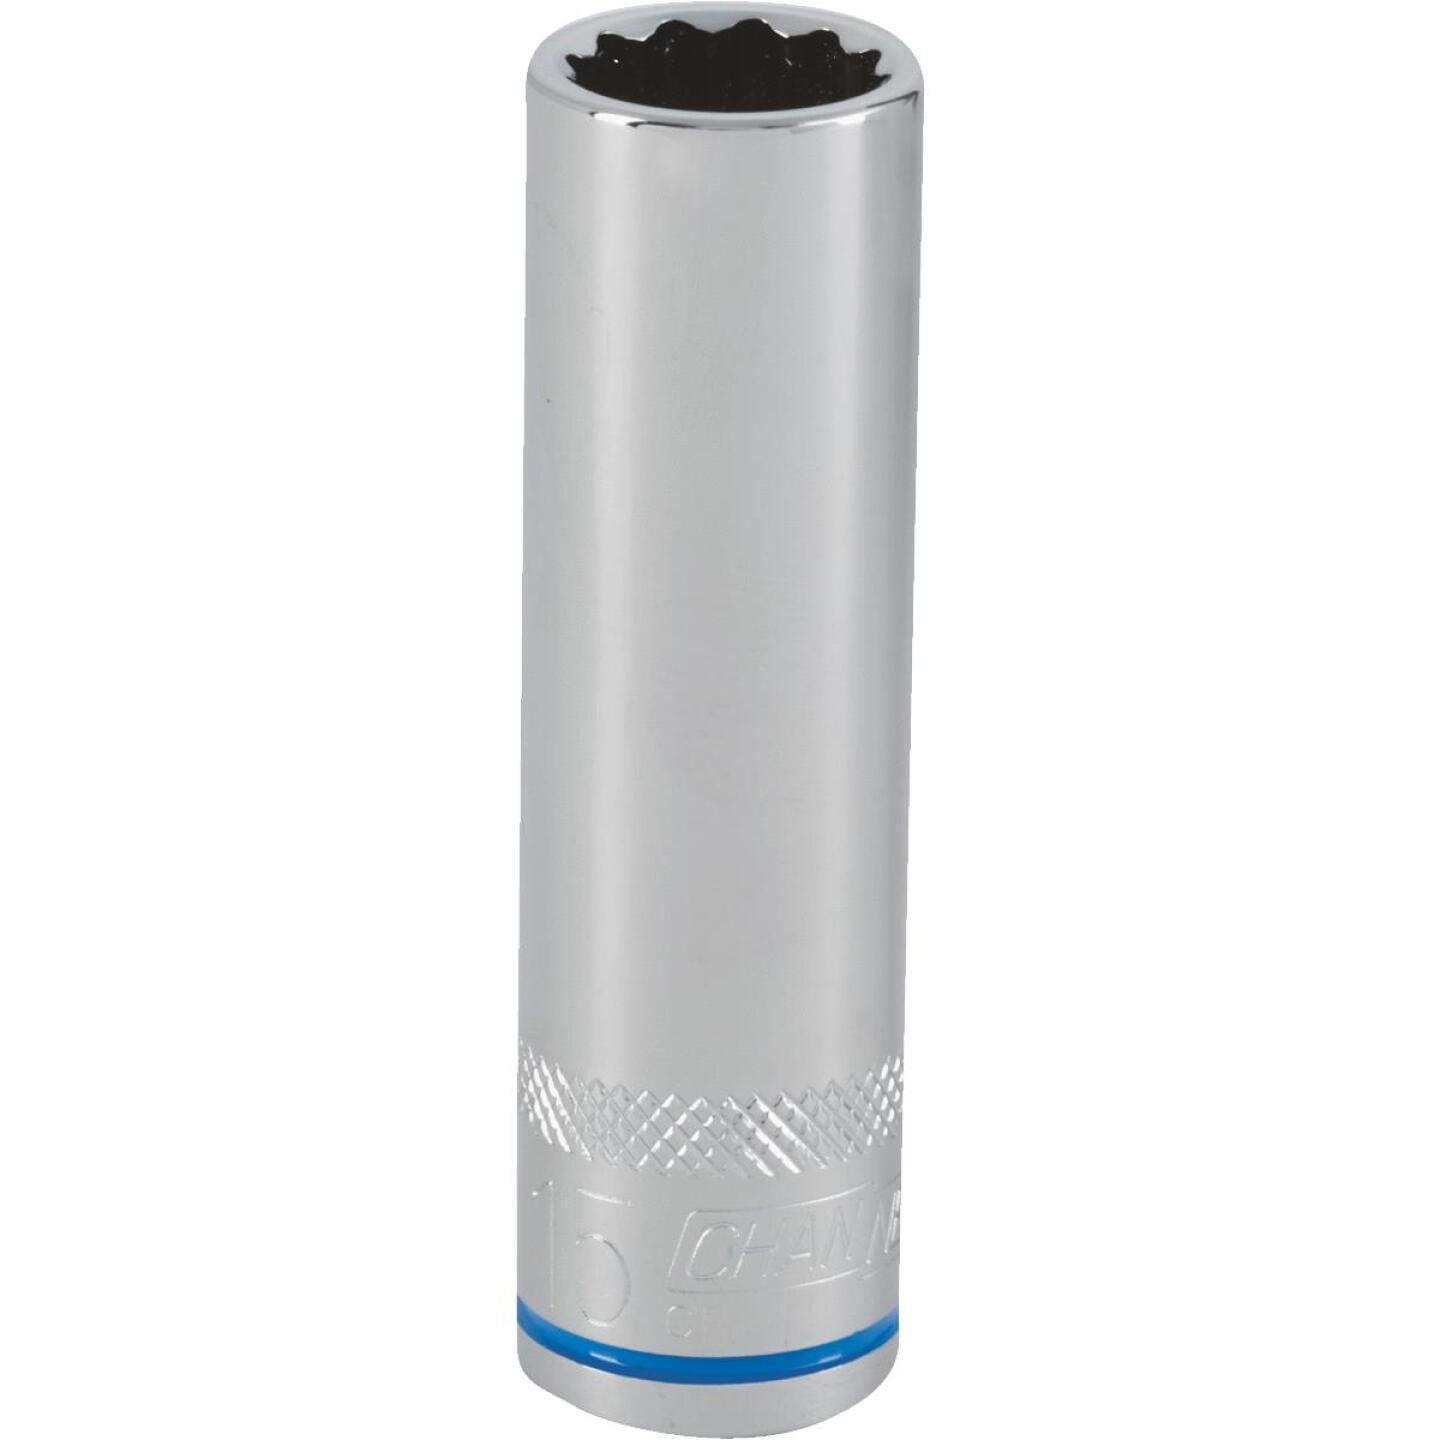 Channellock 1/2 In. Drive 15 mm 12-Point Deep Metric Socket Image 1